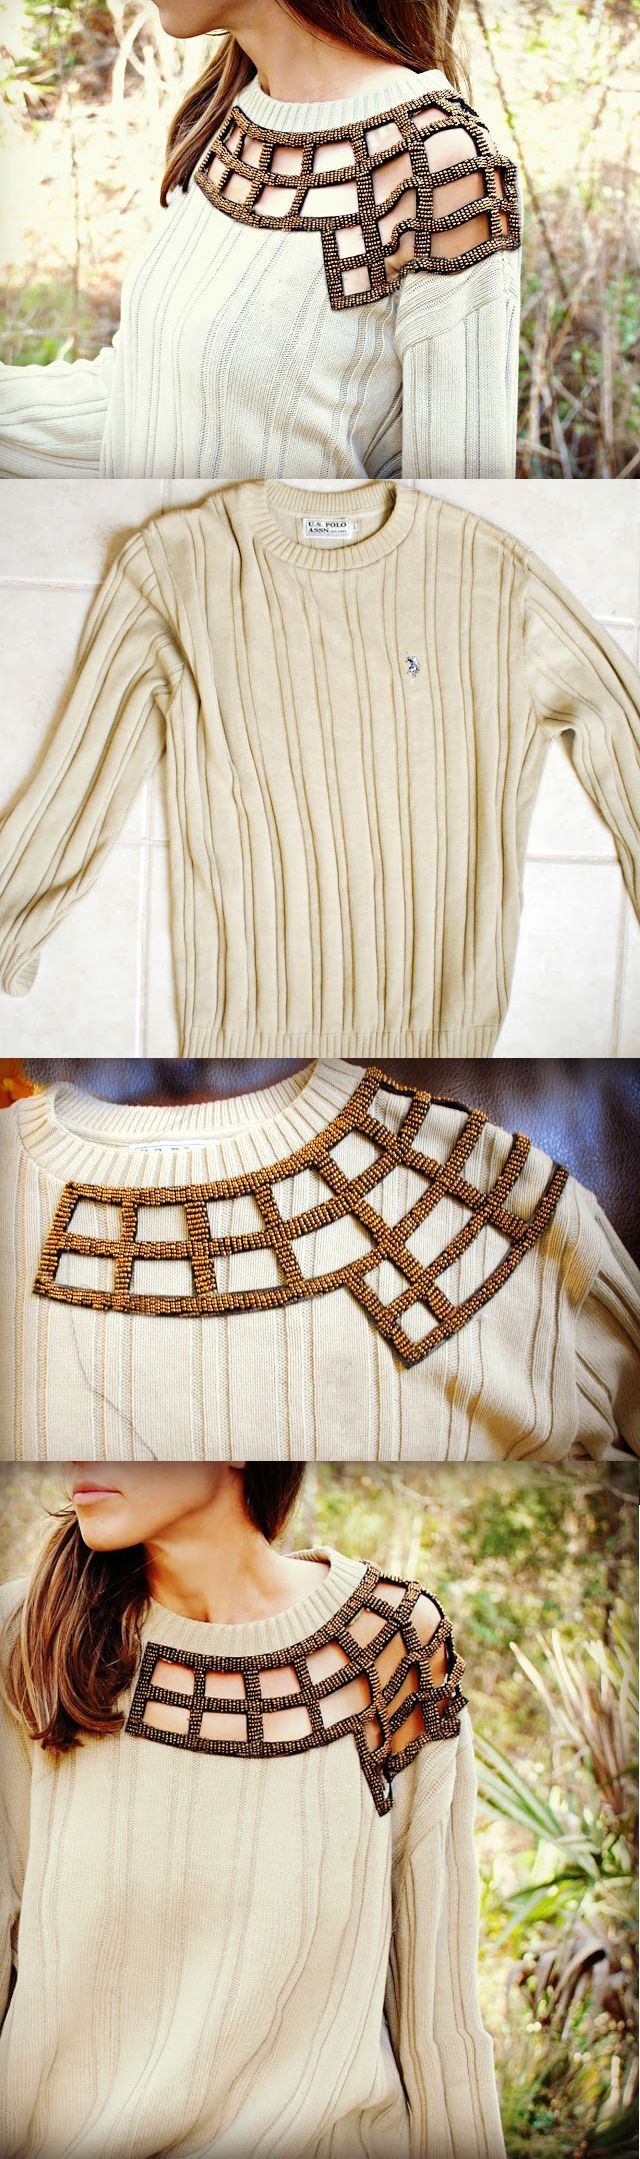 DIY: 12 Fashion Projects